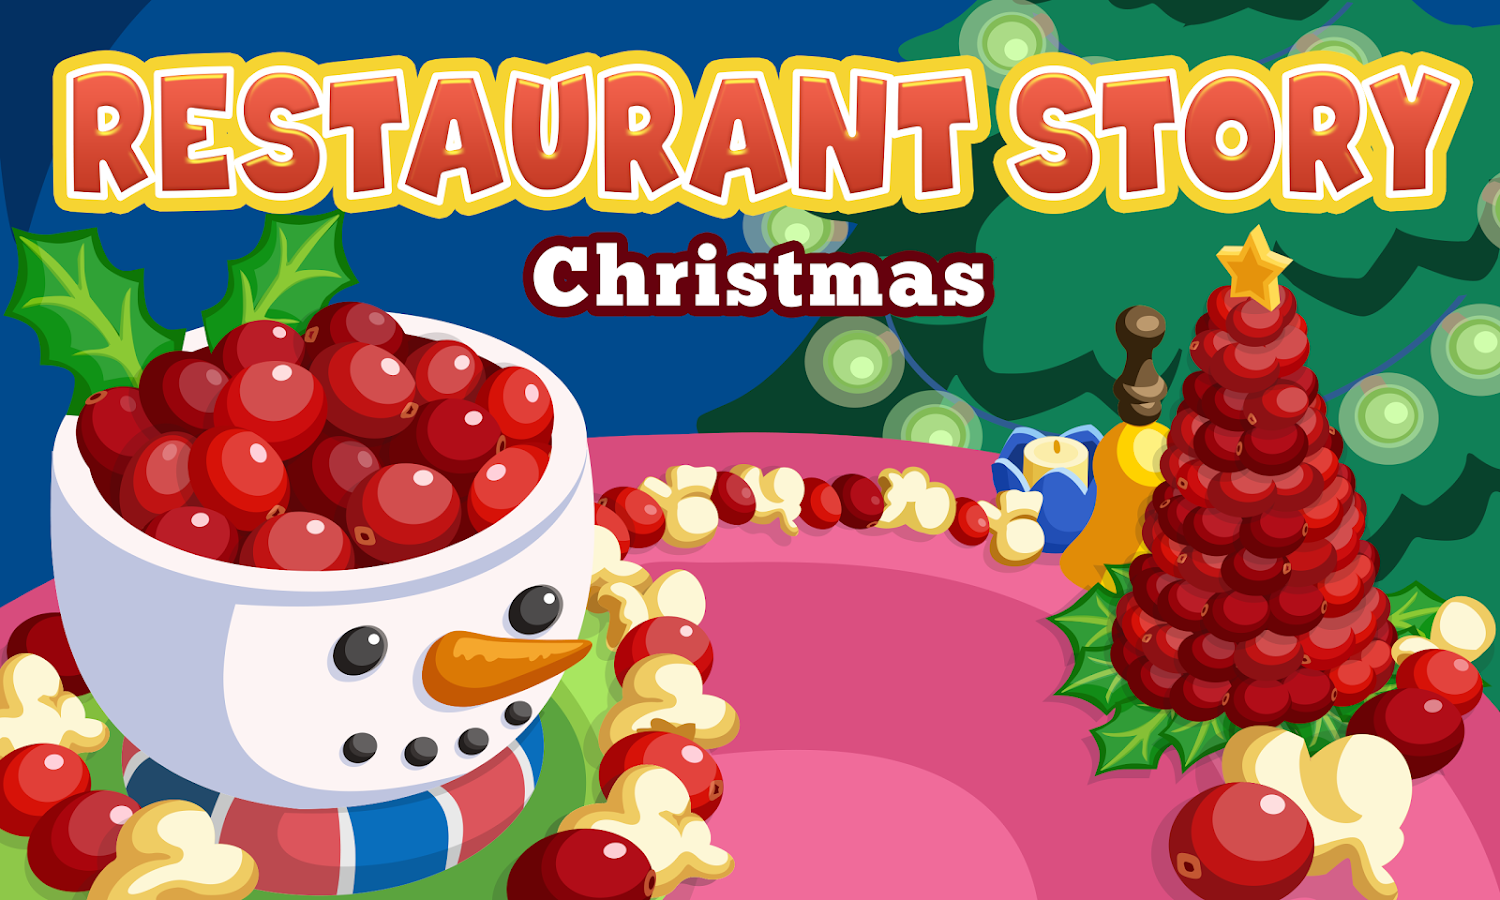 Home Design Story Teamlava Games Restaurant Story Christmas Android Apps On Google Play